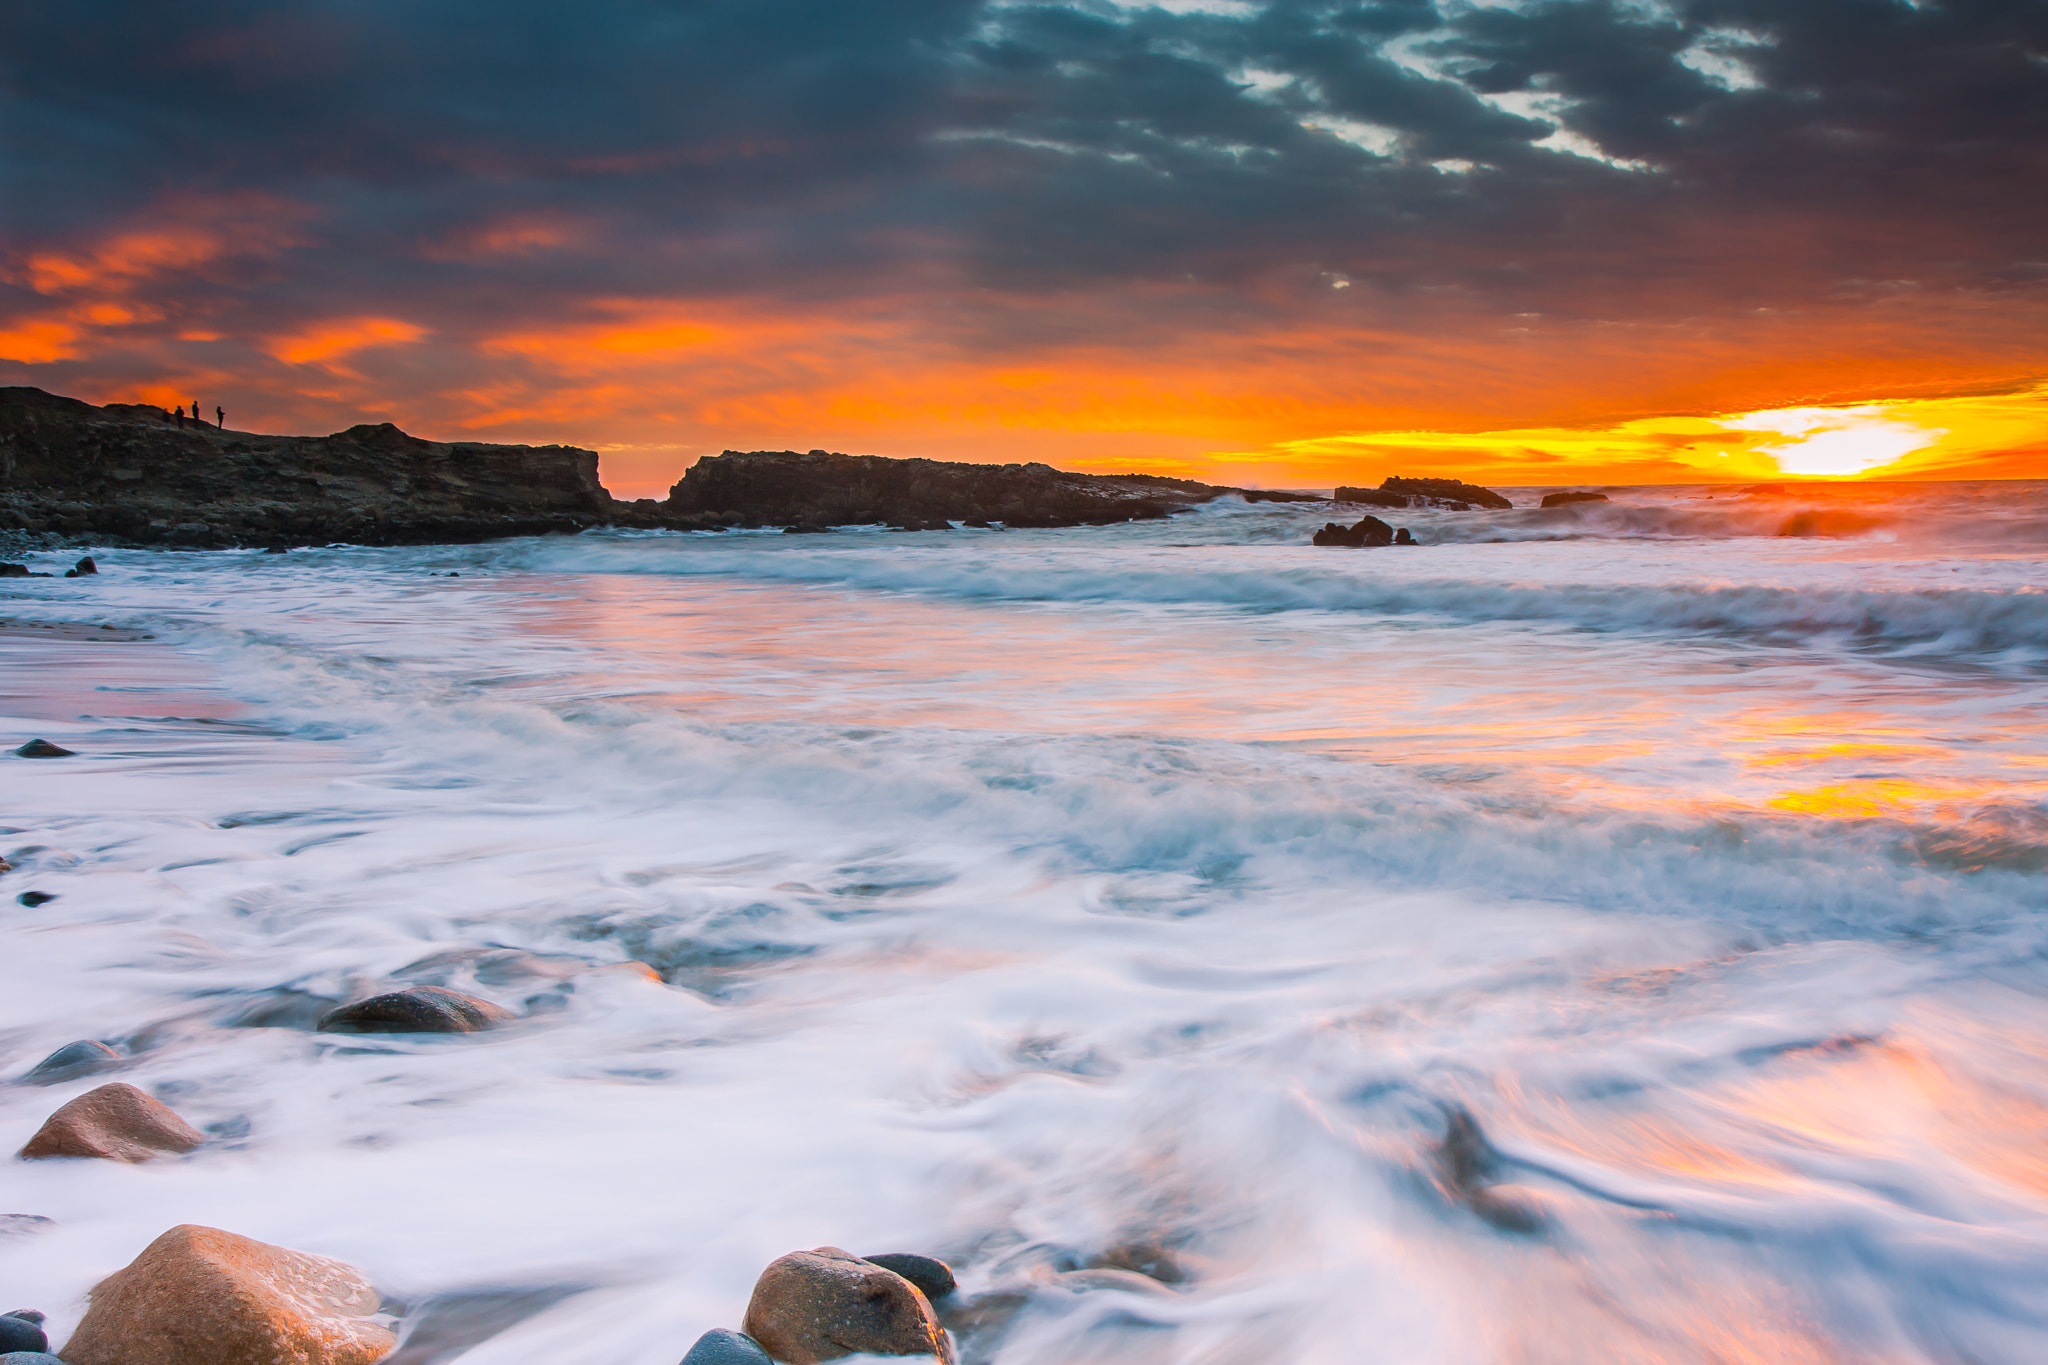 Photograph sunset in northern california by Shikha S on 500px